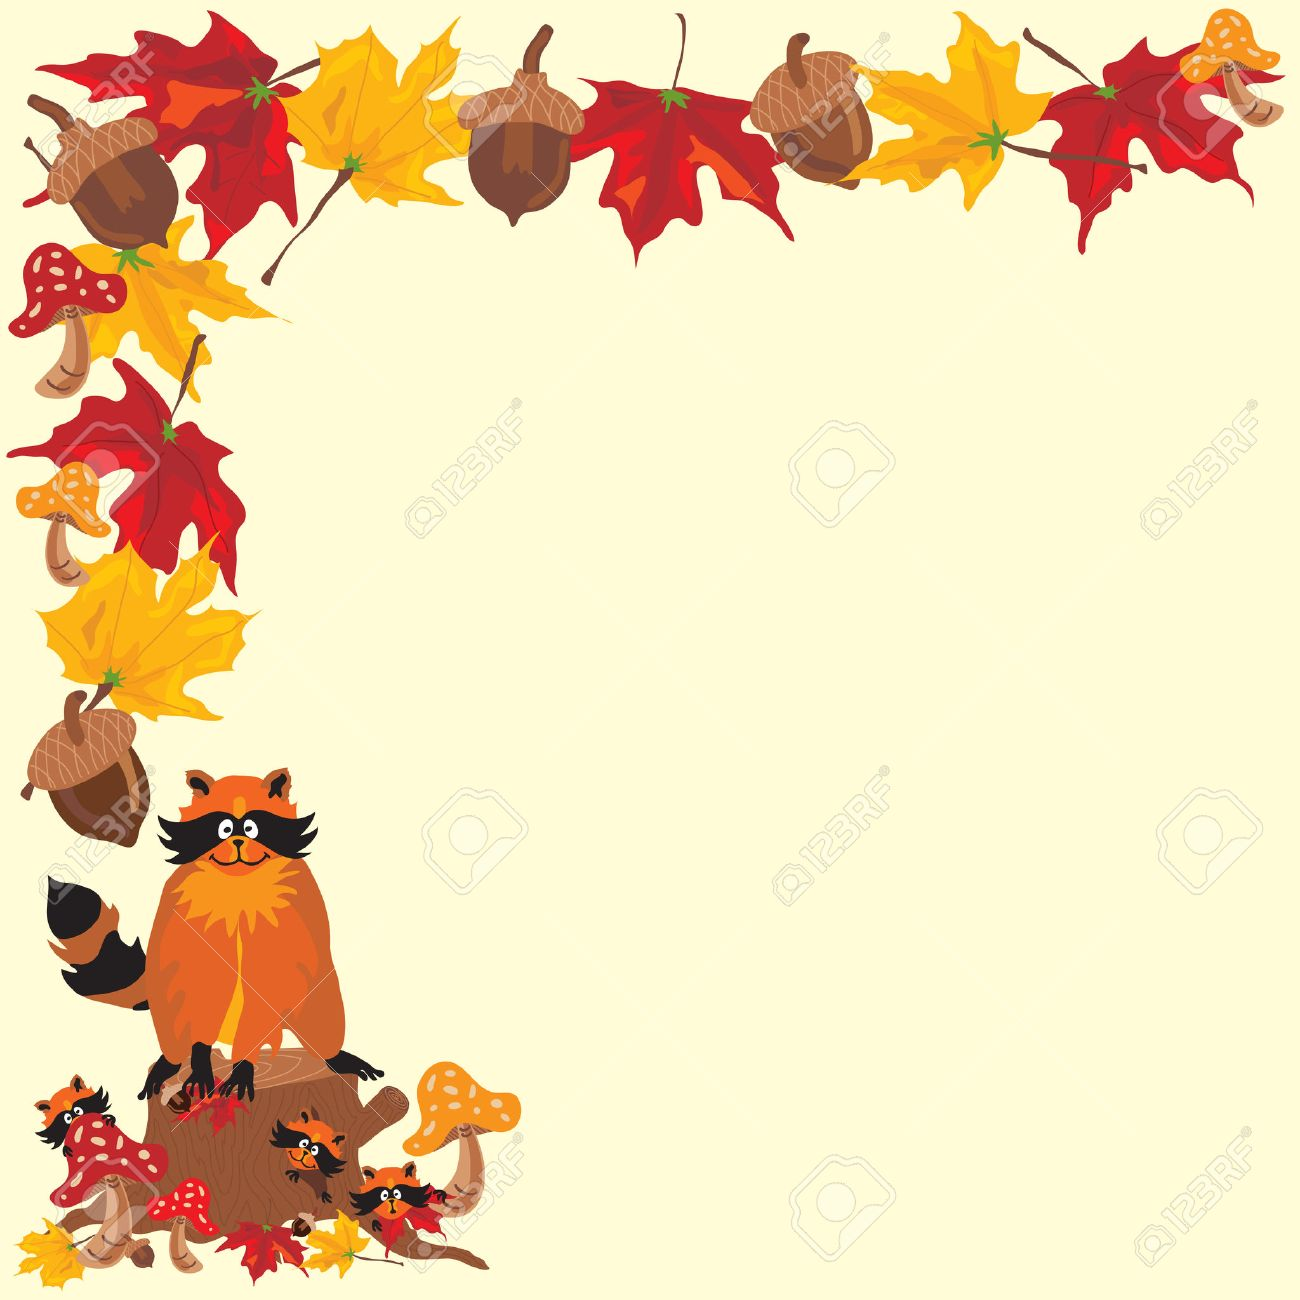 Fall Raccoon Boarder With Fall Leaves, Acorns And Toadstools ...